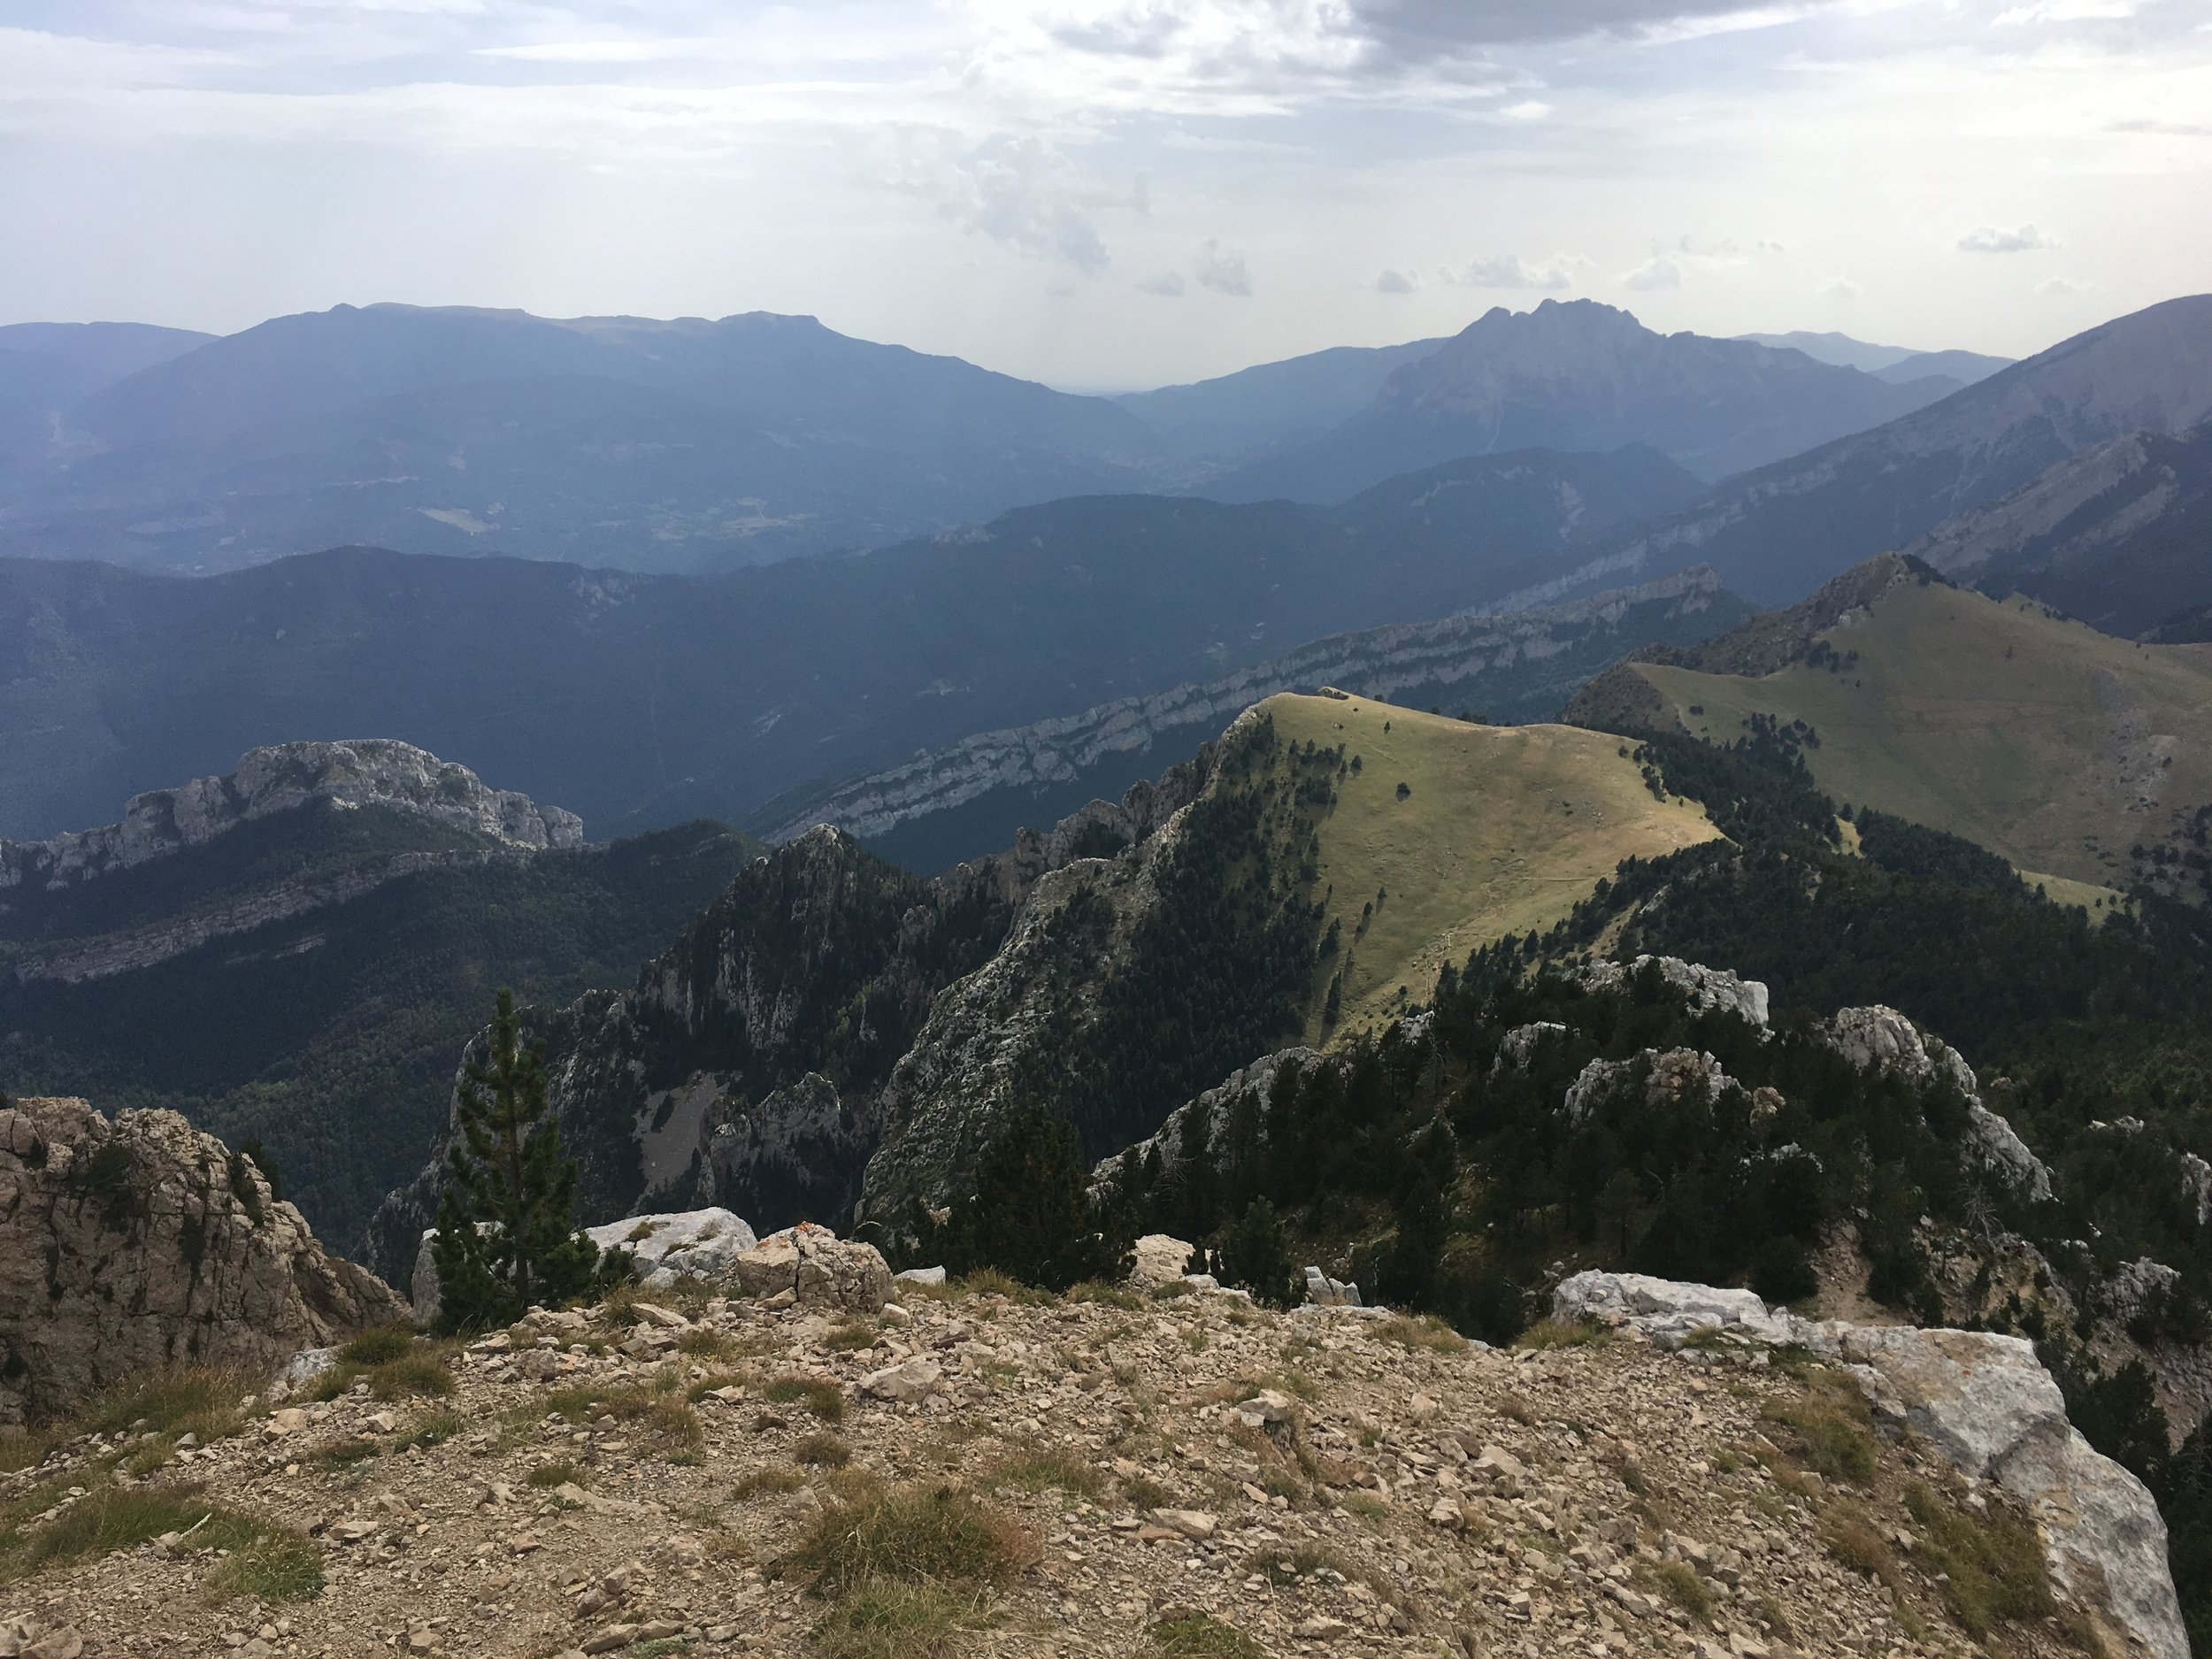 Peynes Altes, 2,267 meters / 7,467 feet